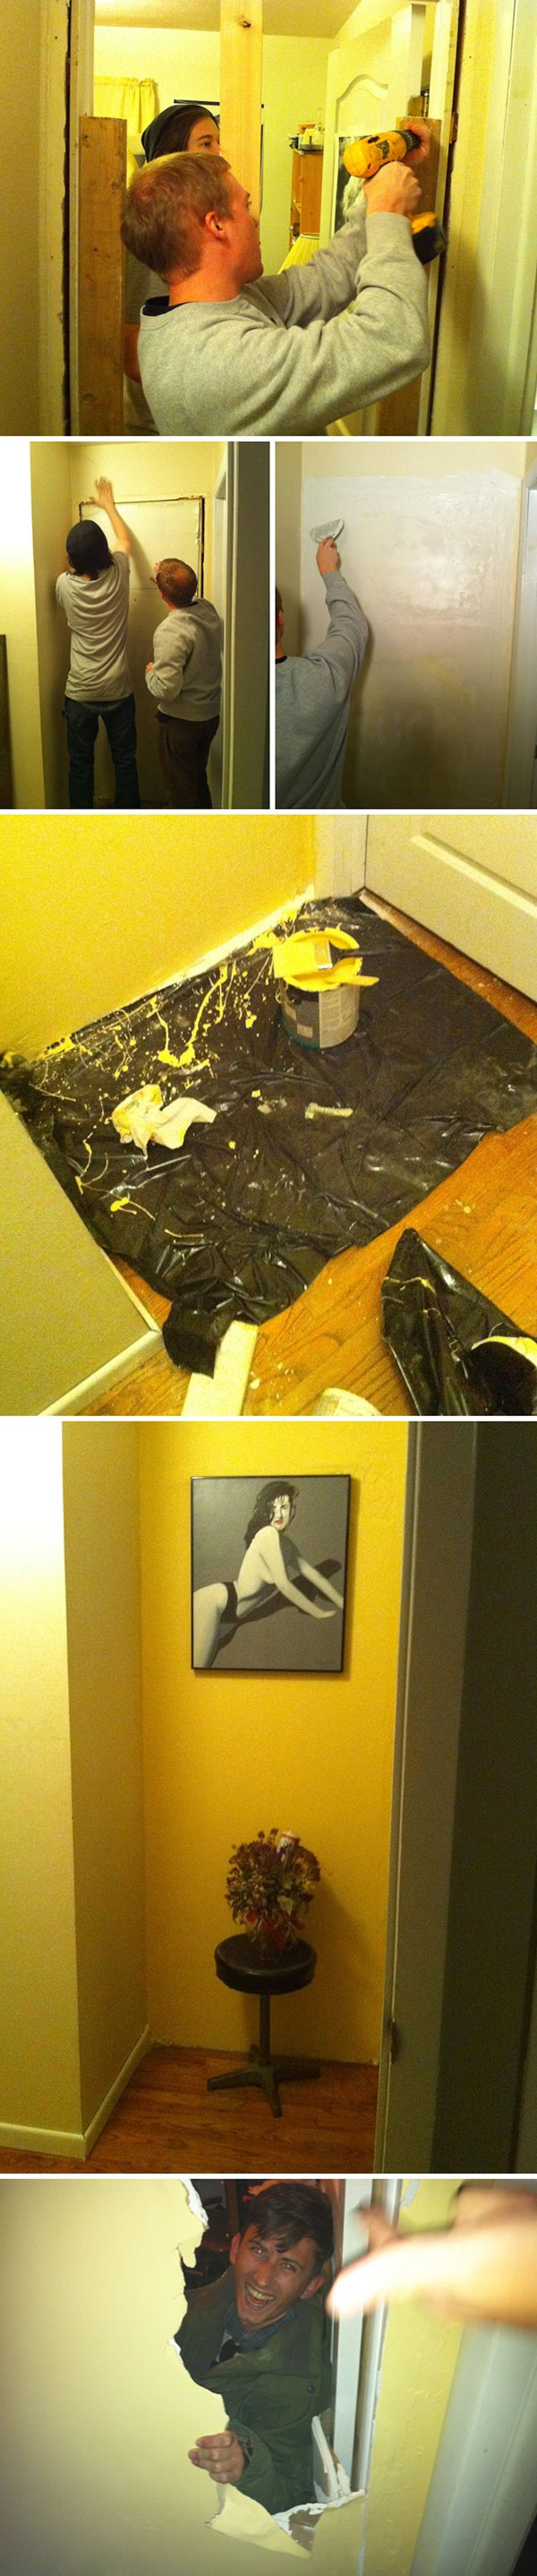 Times Living With Roommates Was The Worst walled off his room